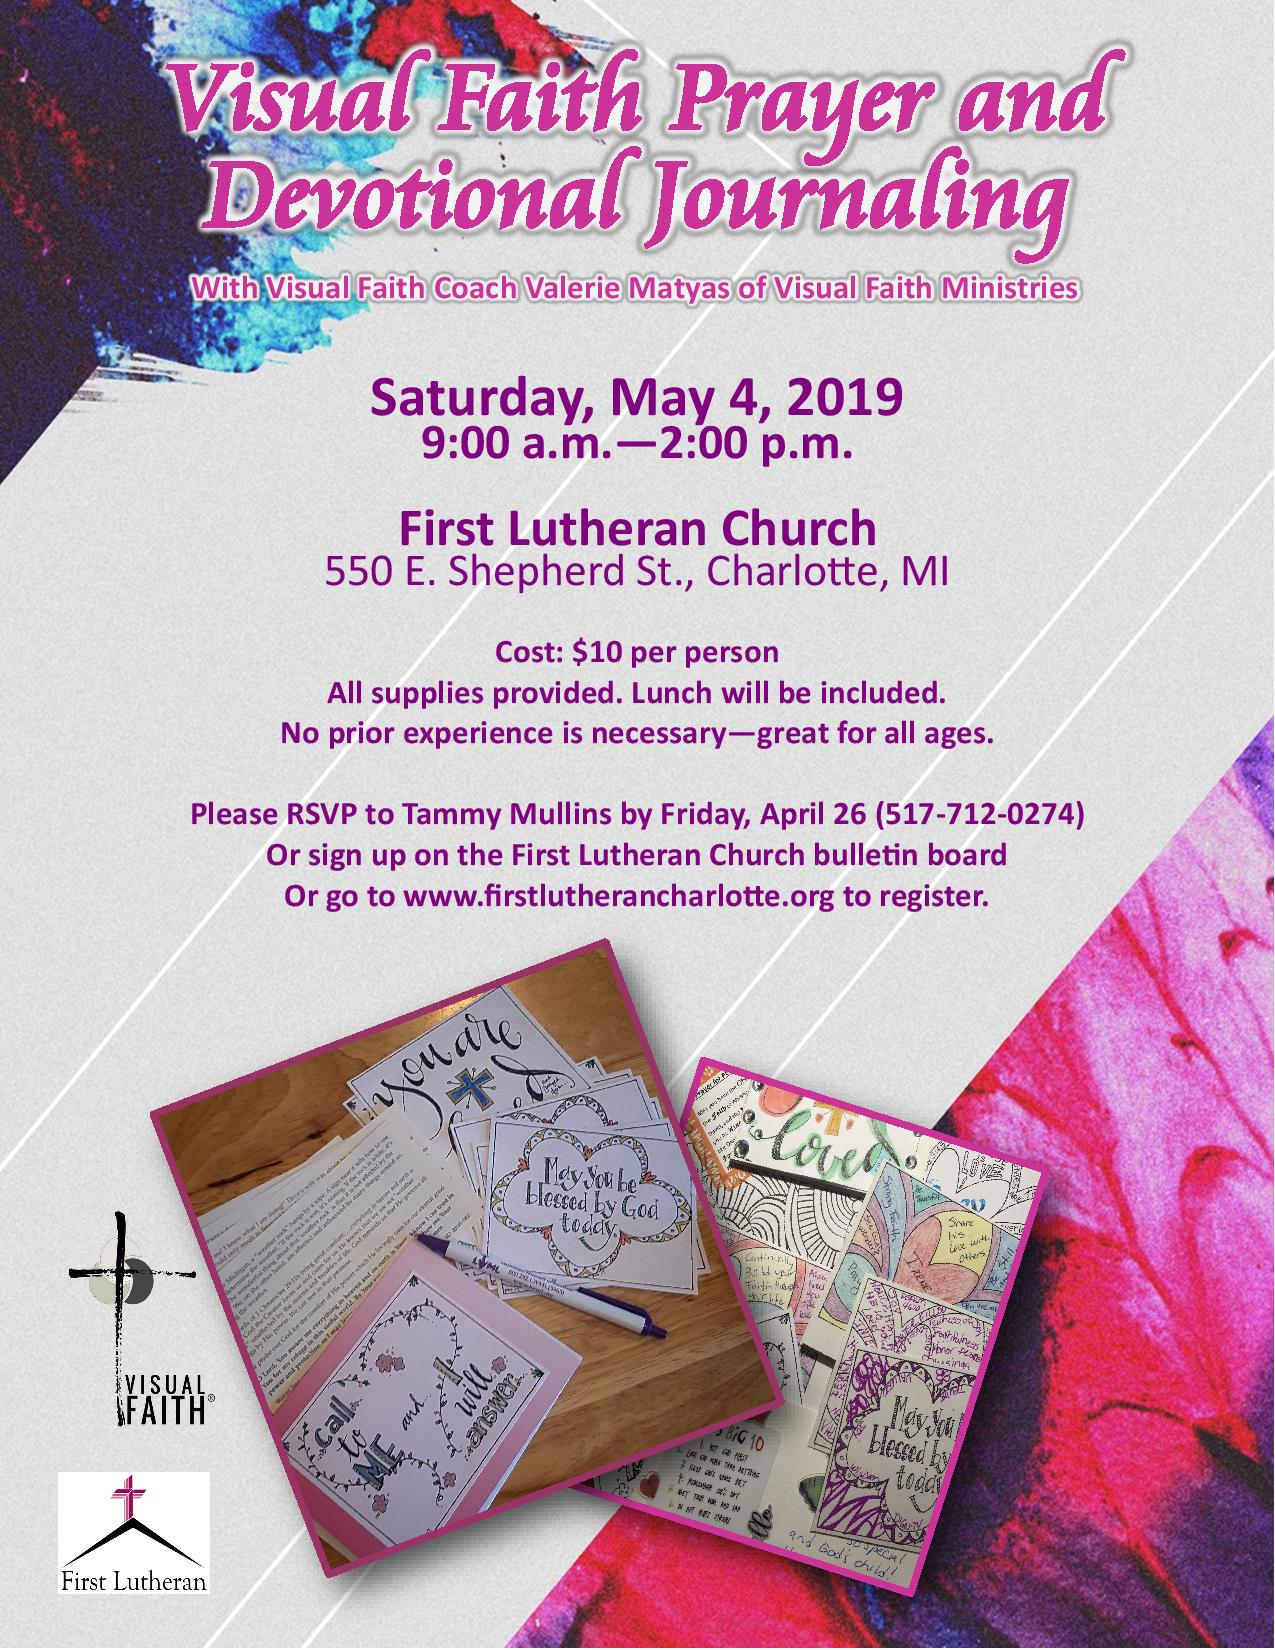 Tammy Mullins faith journaling flyer-page-001.jpg